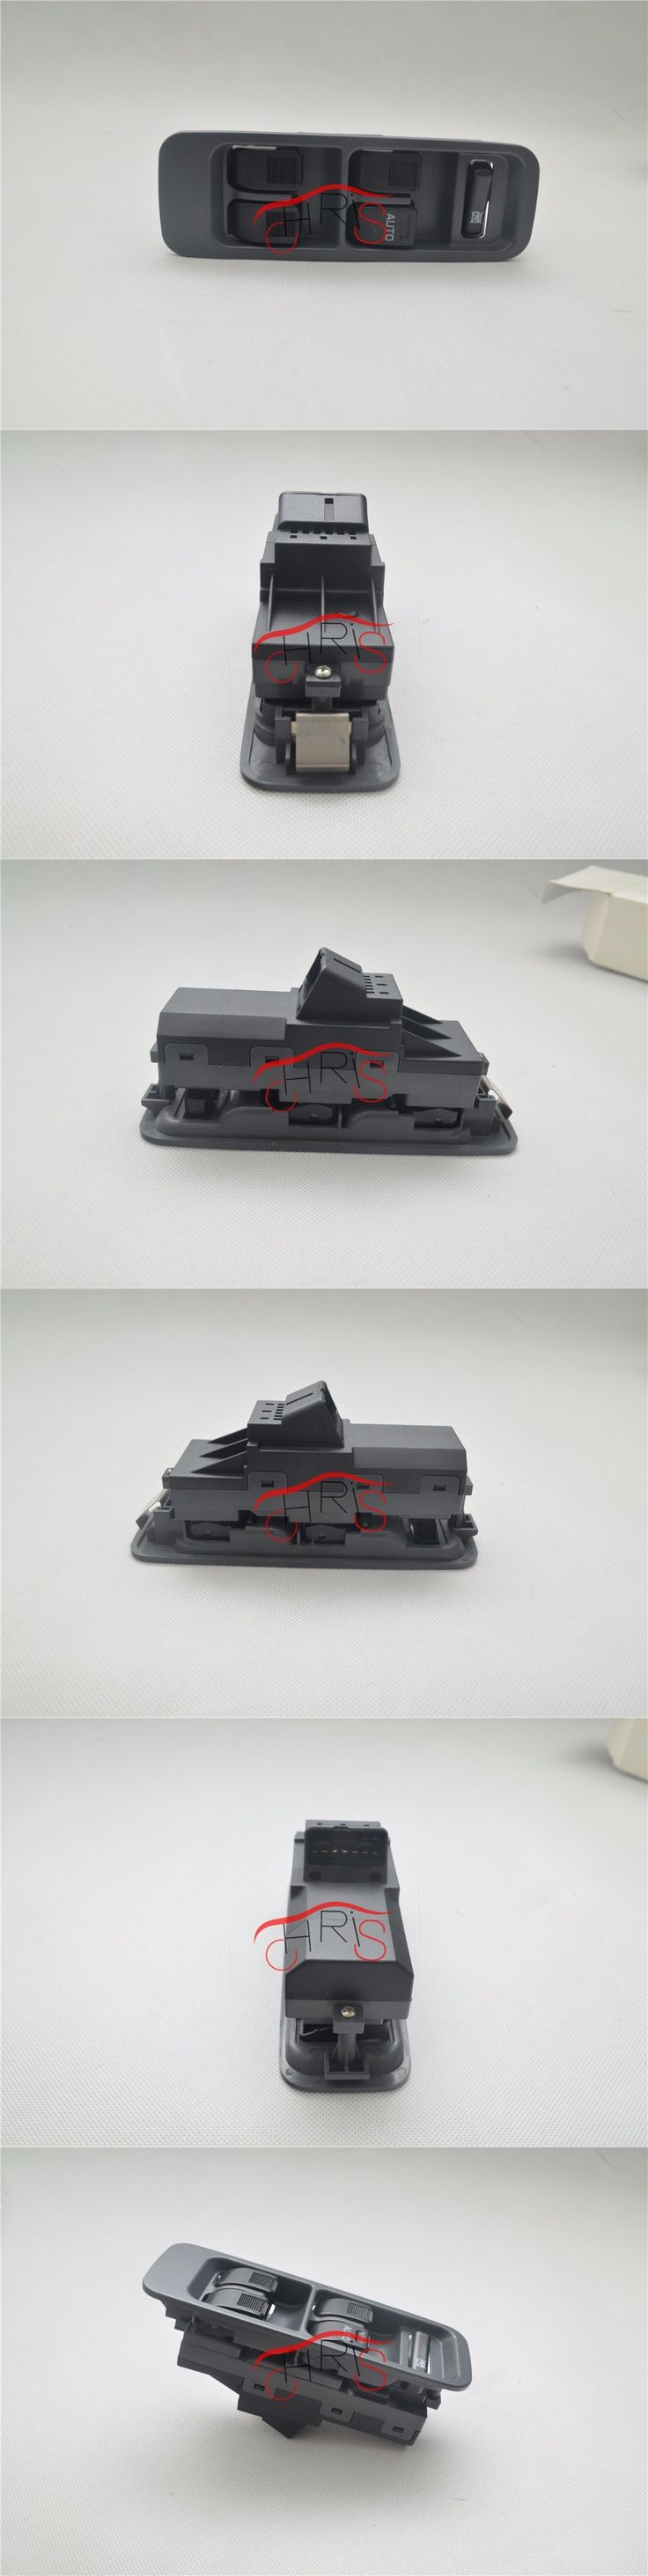 Master Power Window Switch Right Driving Side RHD 84820-B5010 84820B5010 For Daihatsu Sirion OS Terios Serion YRV 1998-2001